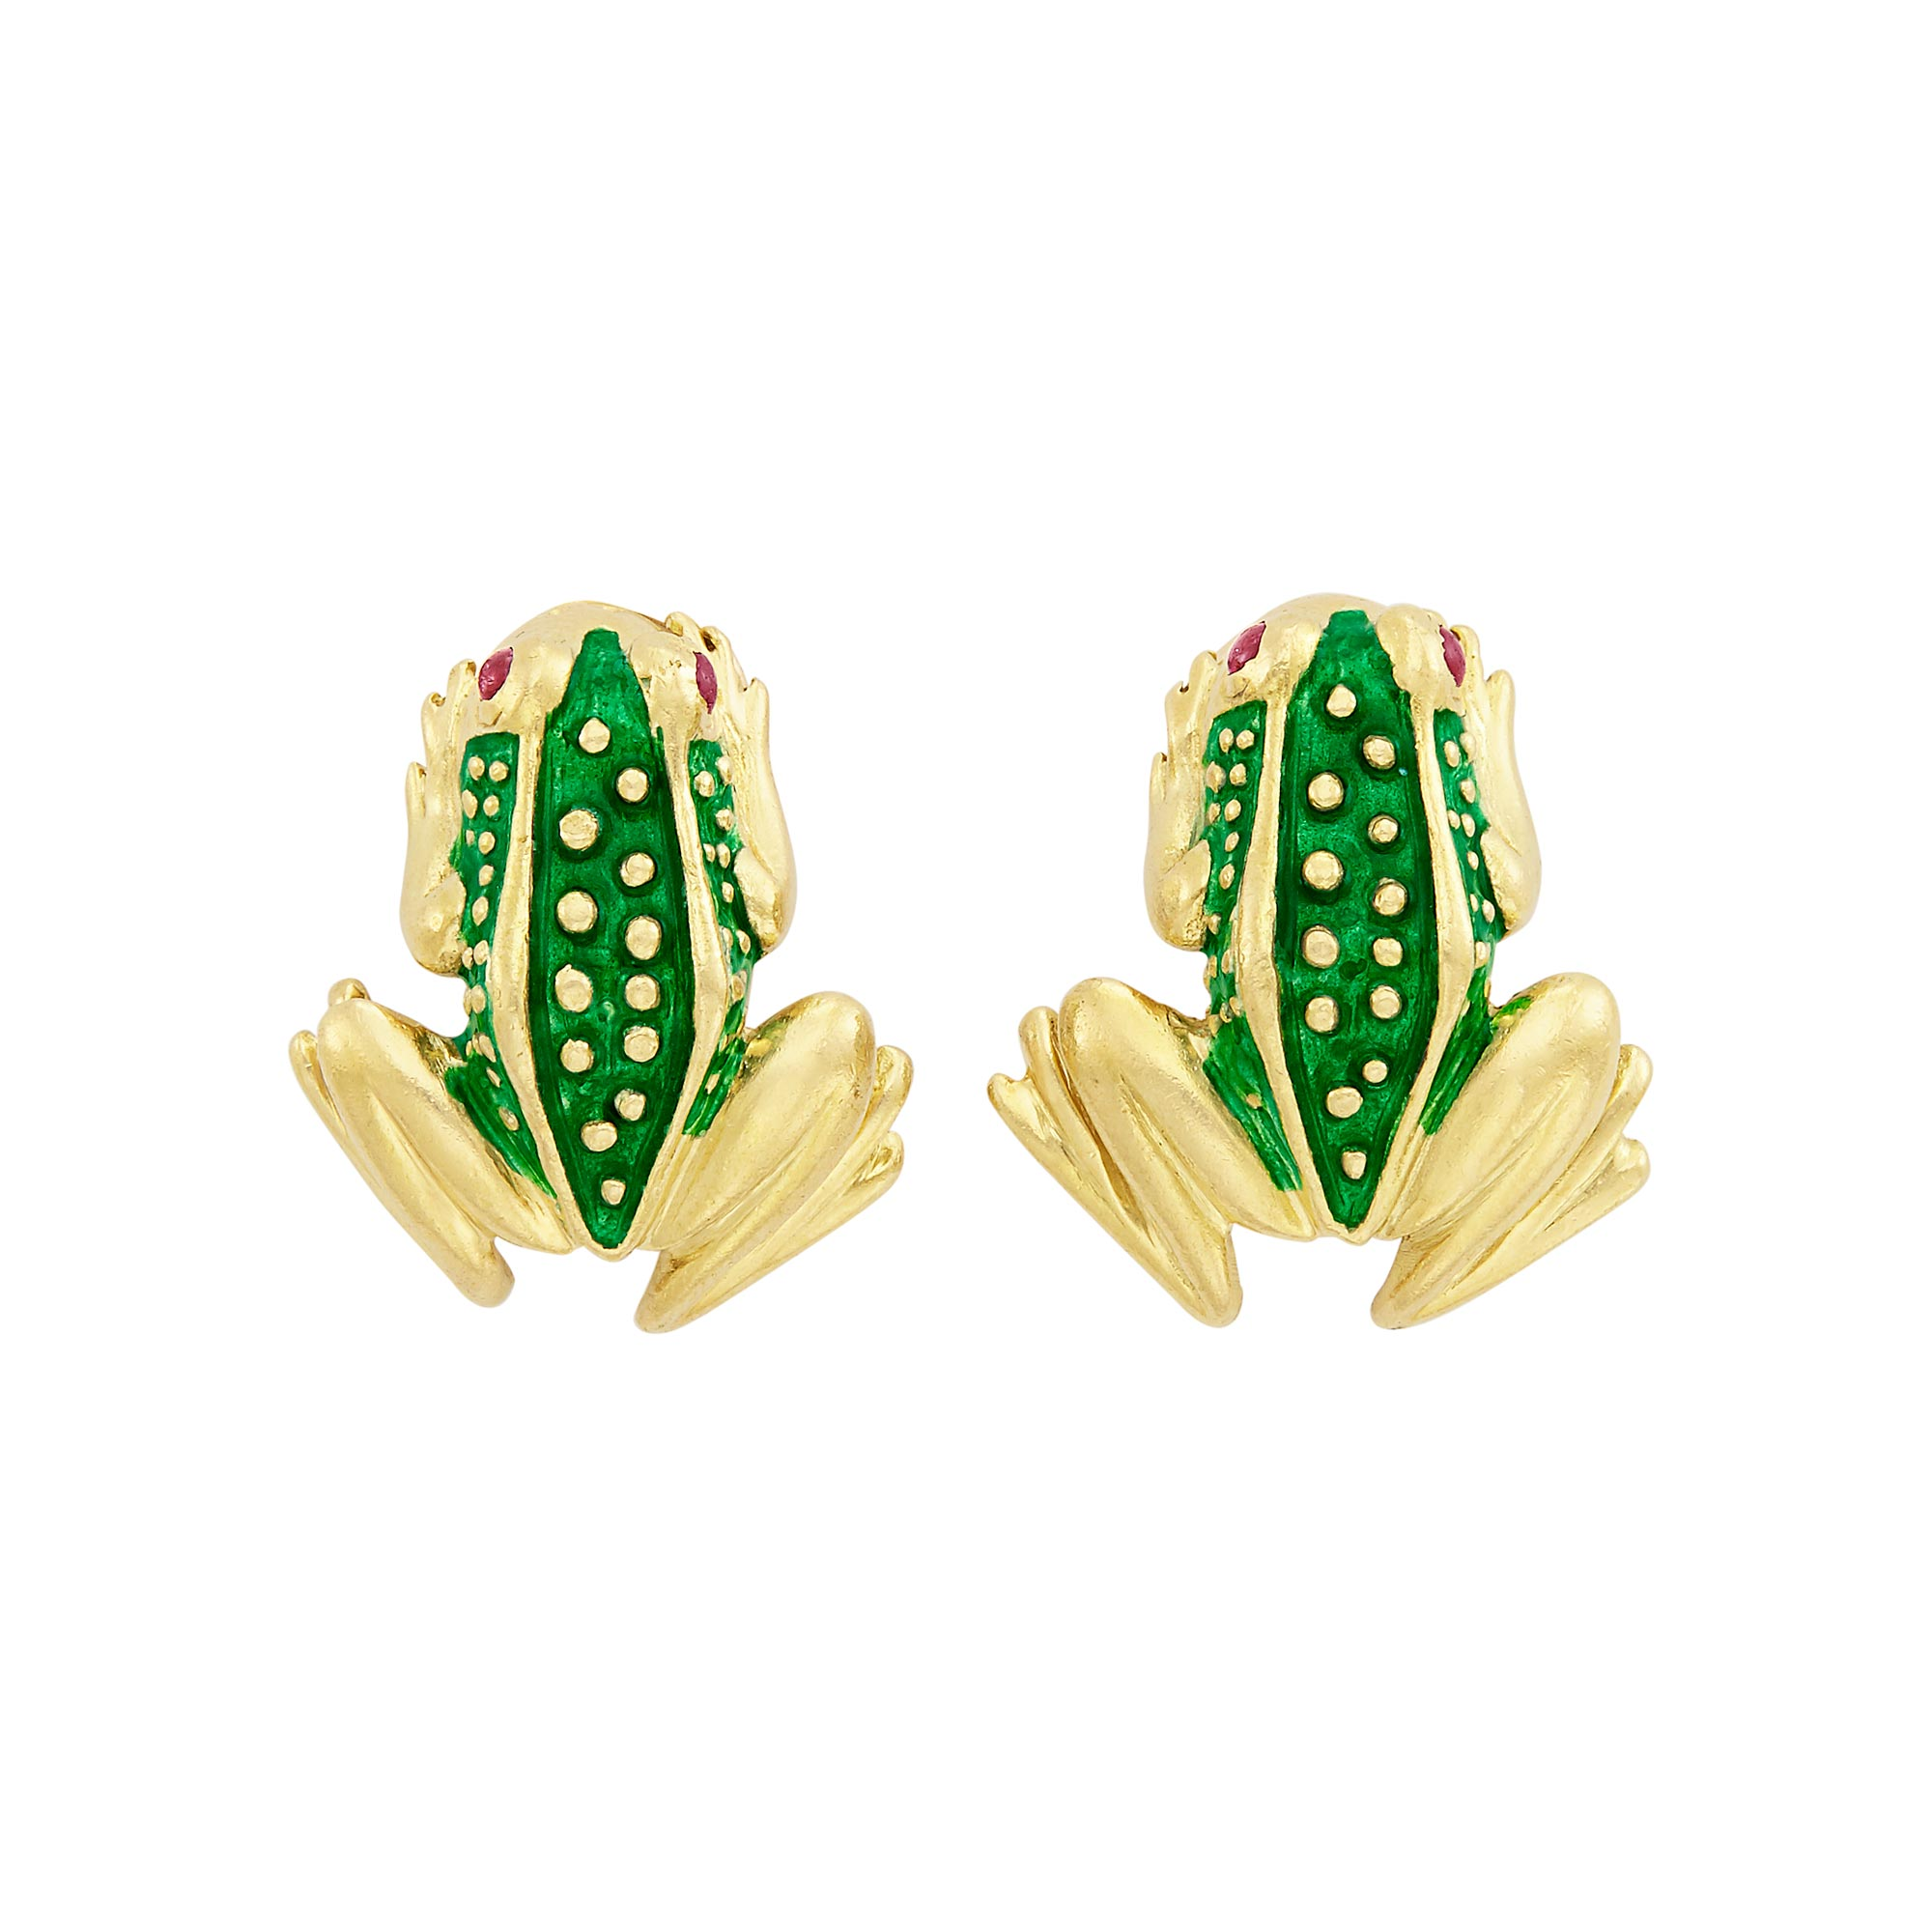 Lot image - Pair of Gold, Green Enamel, and Cabochon Ruby Frog Earclips, Boris LeBeau